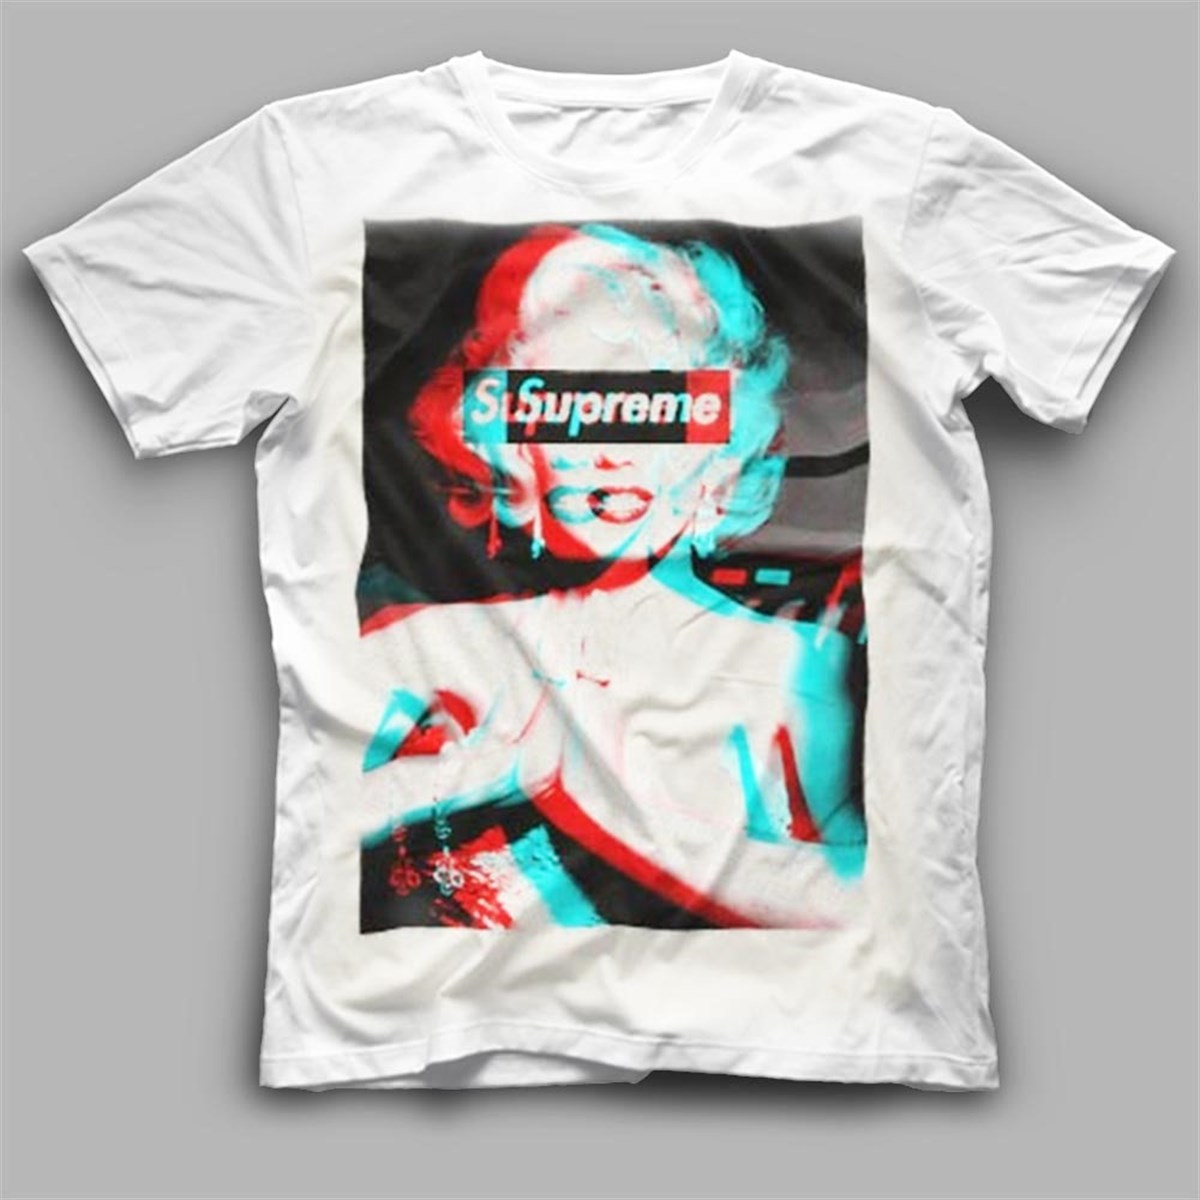 Marilyn Monroe Kids T-Shirt | Marilyn Monroe Unisex Kids Tees